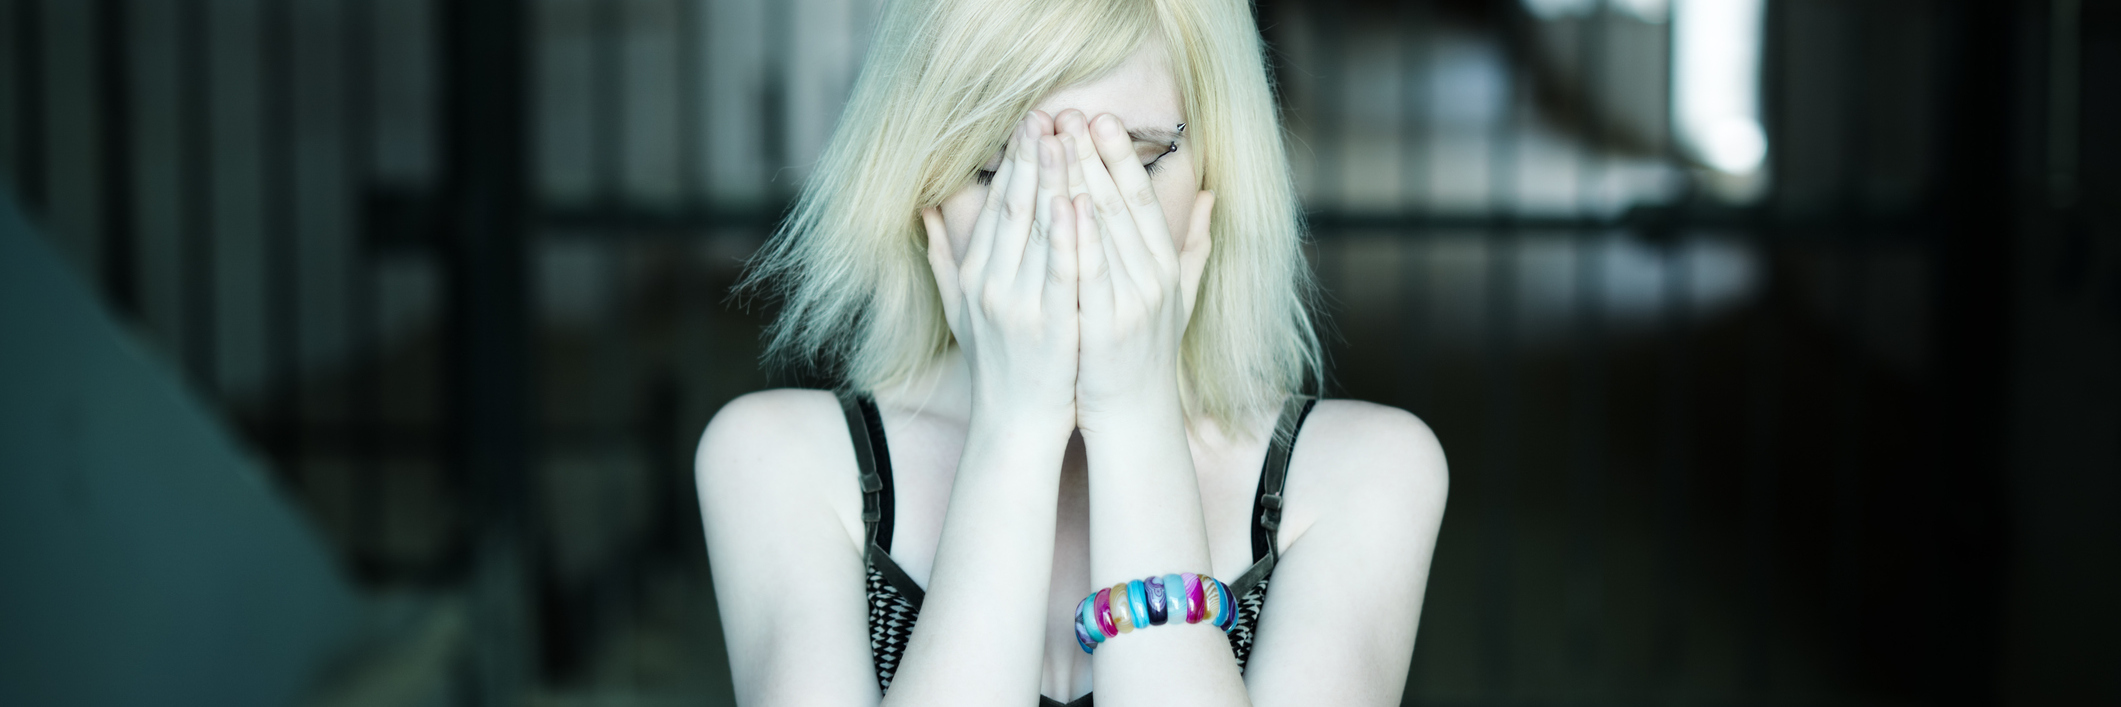 woman in dark hallway with hands covering face and eyes looking upset